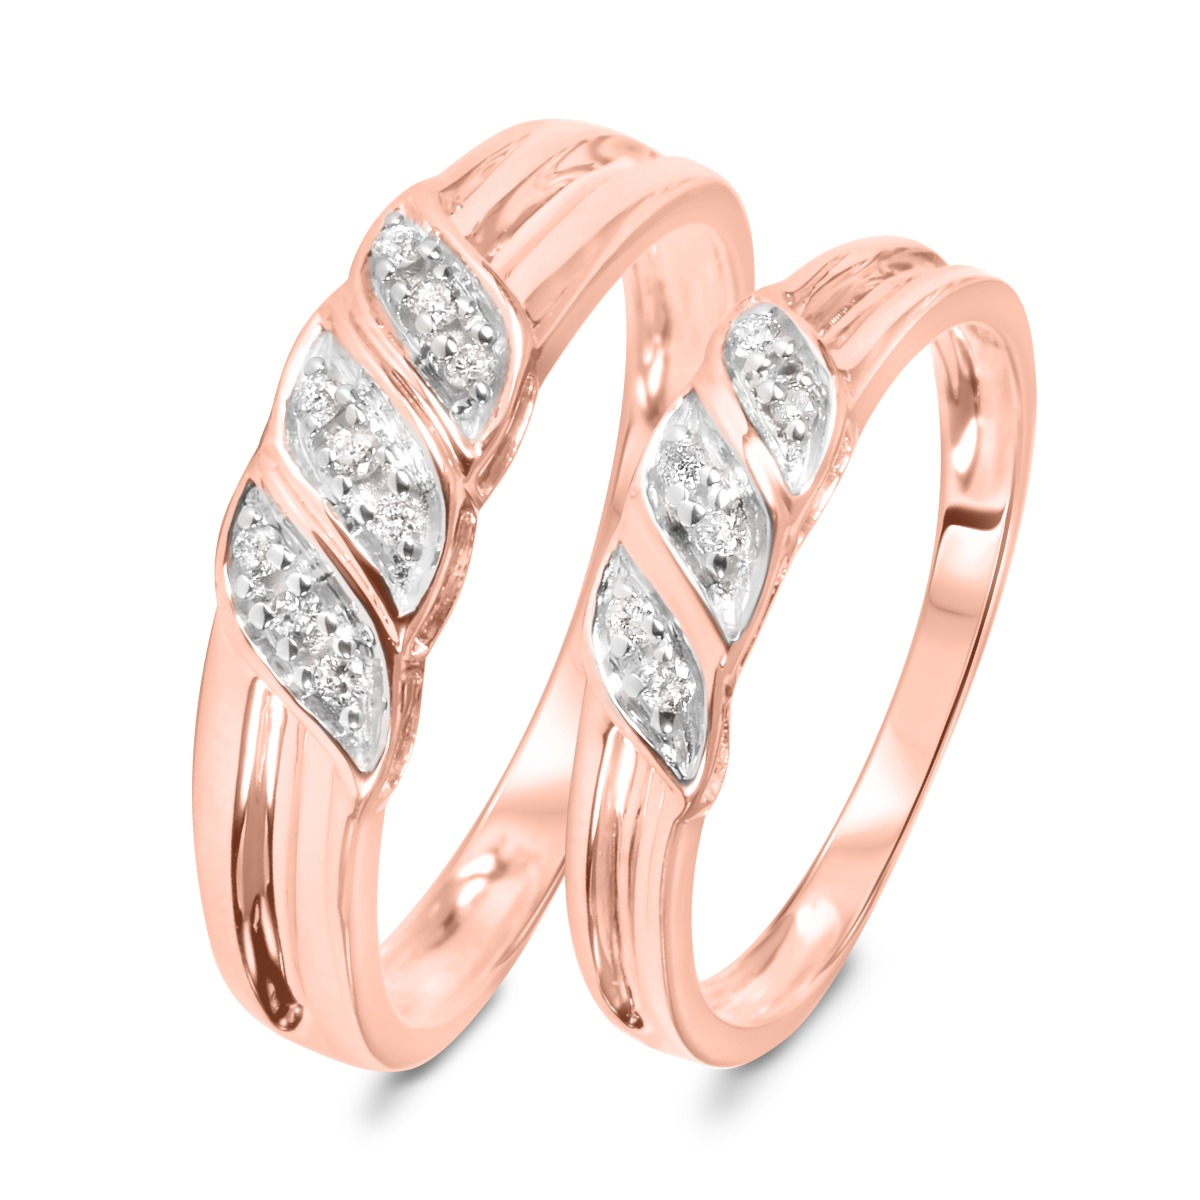 1/7 Carat T.W. Diamond Ladies' and Men's Wedding Rings 10K Rose Gold